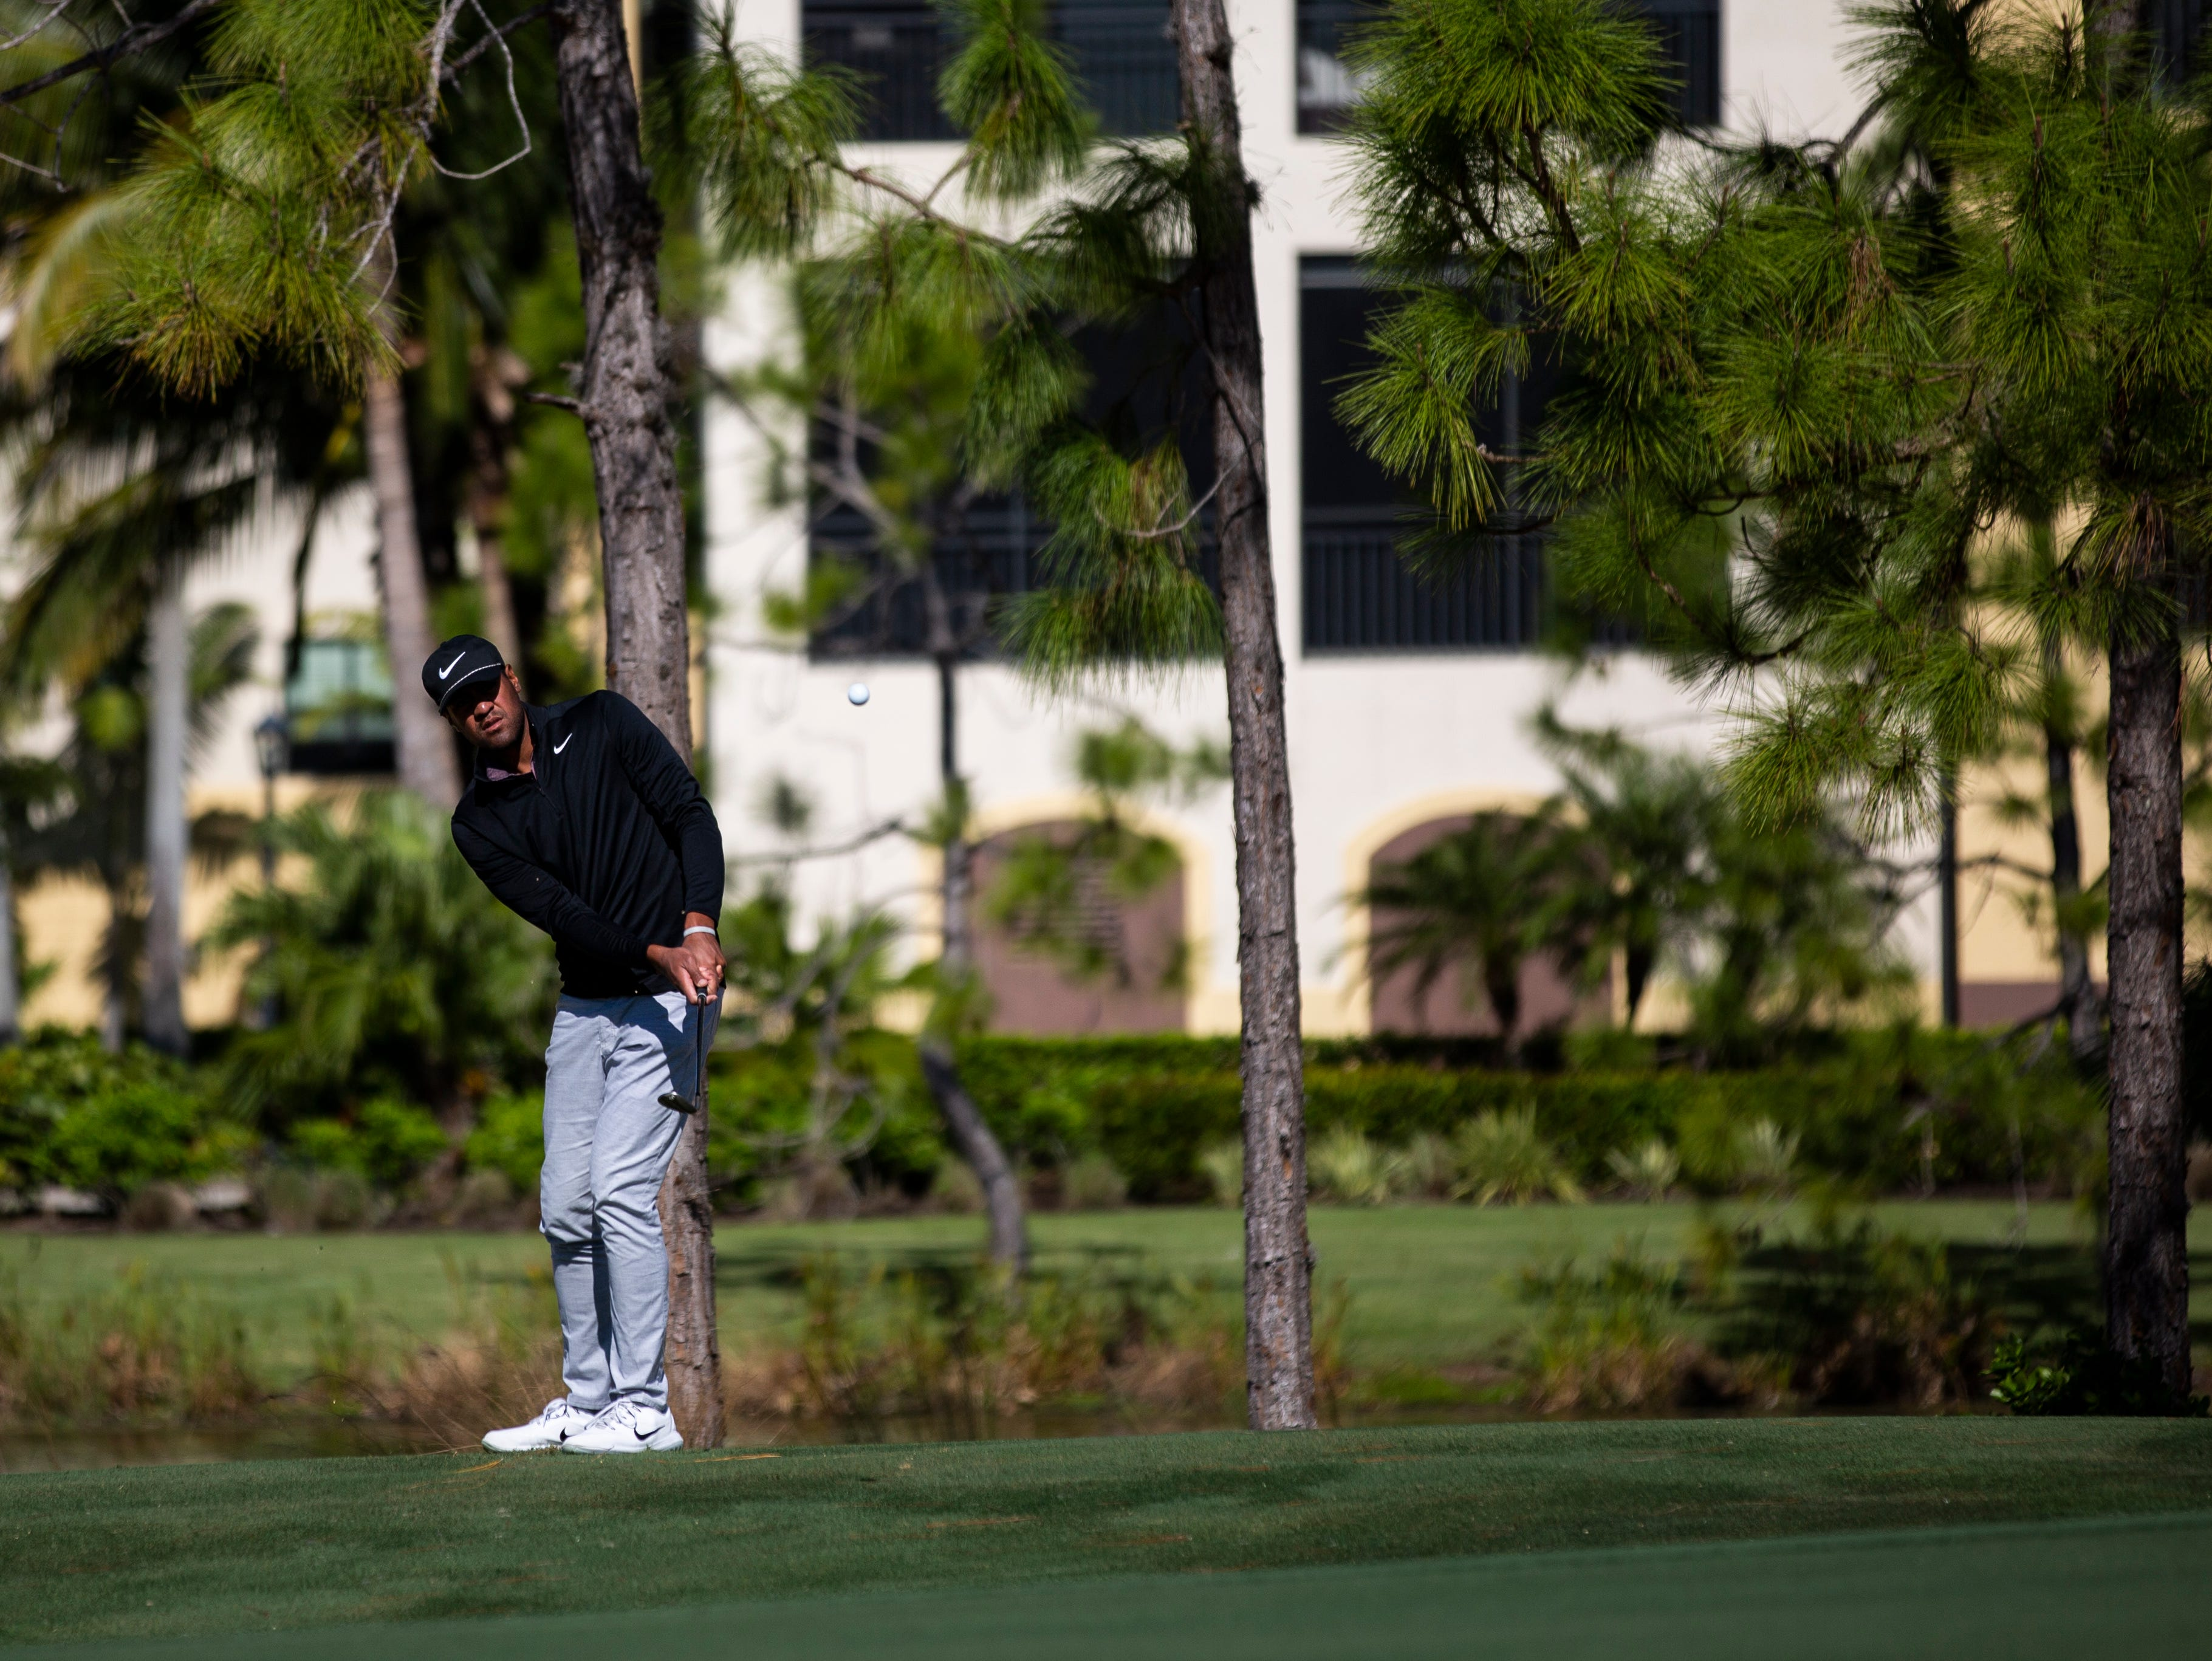 Tony Finau of Utah, tees off during the first Pro - Amateur round of the 30th annual QBE Shootout at Tiburón Golf Club on Wednesday, Dec. 5, 2018.